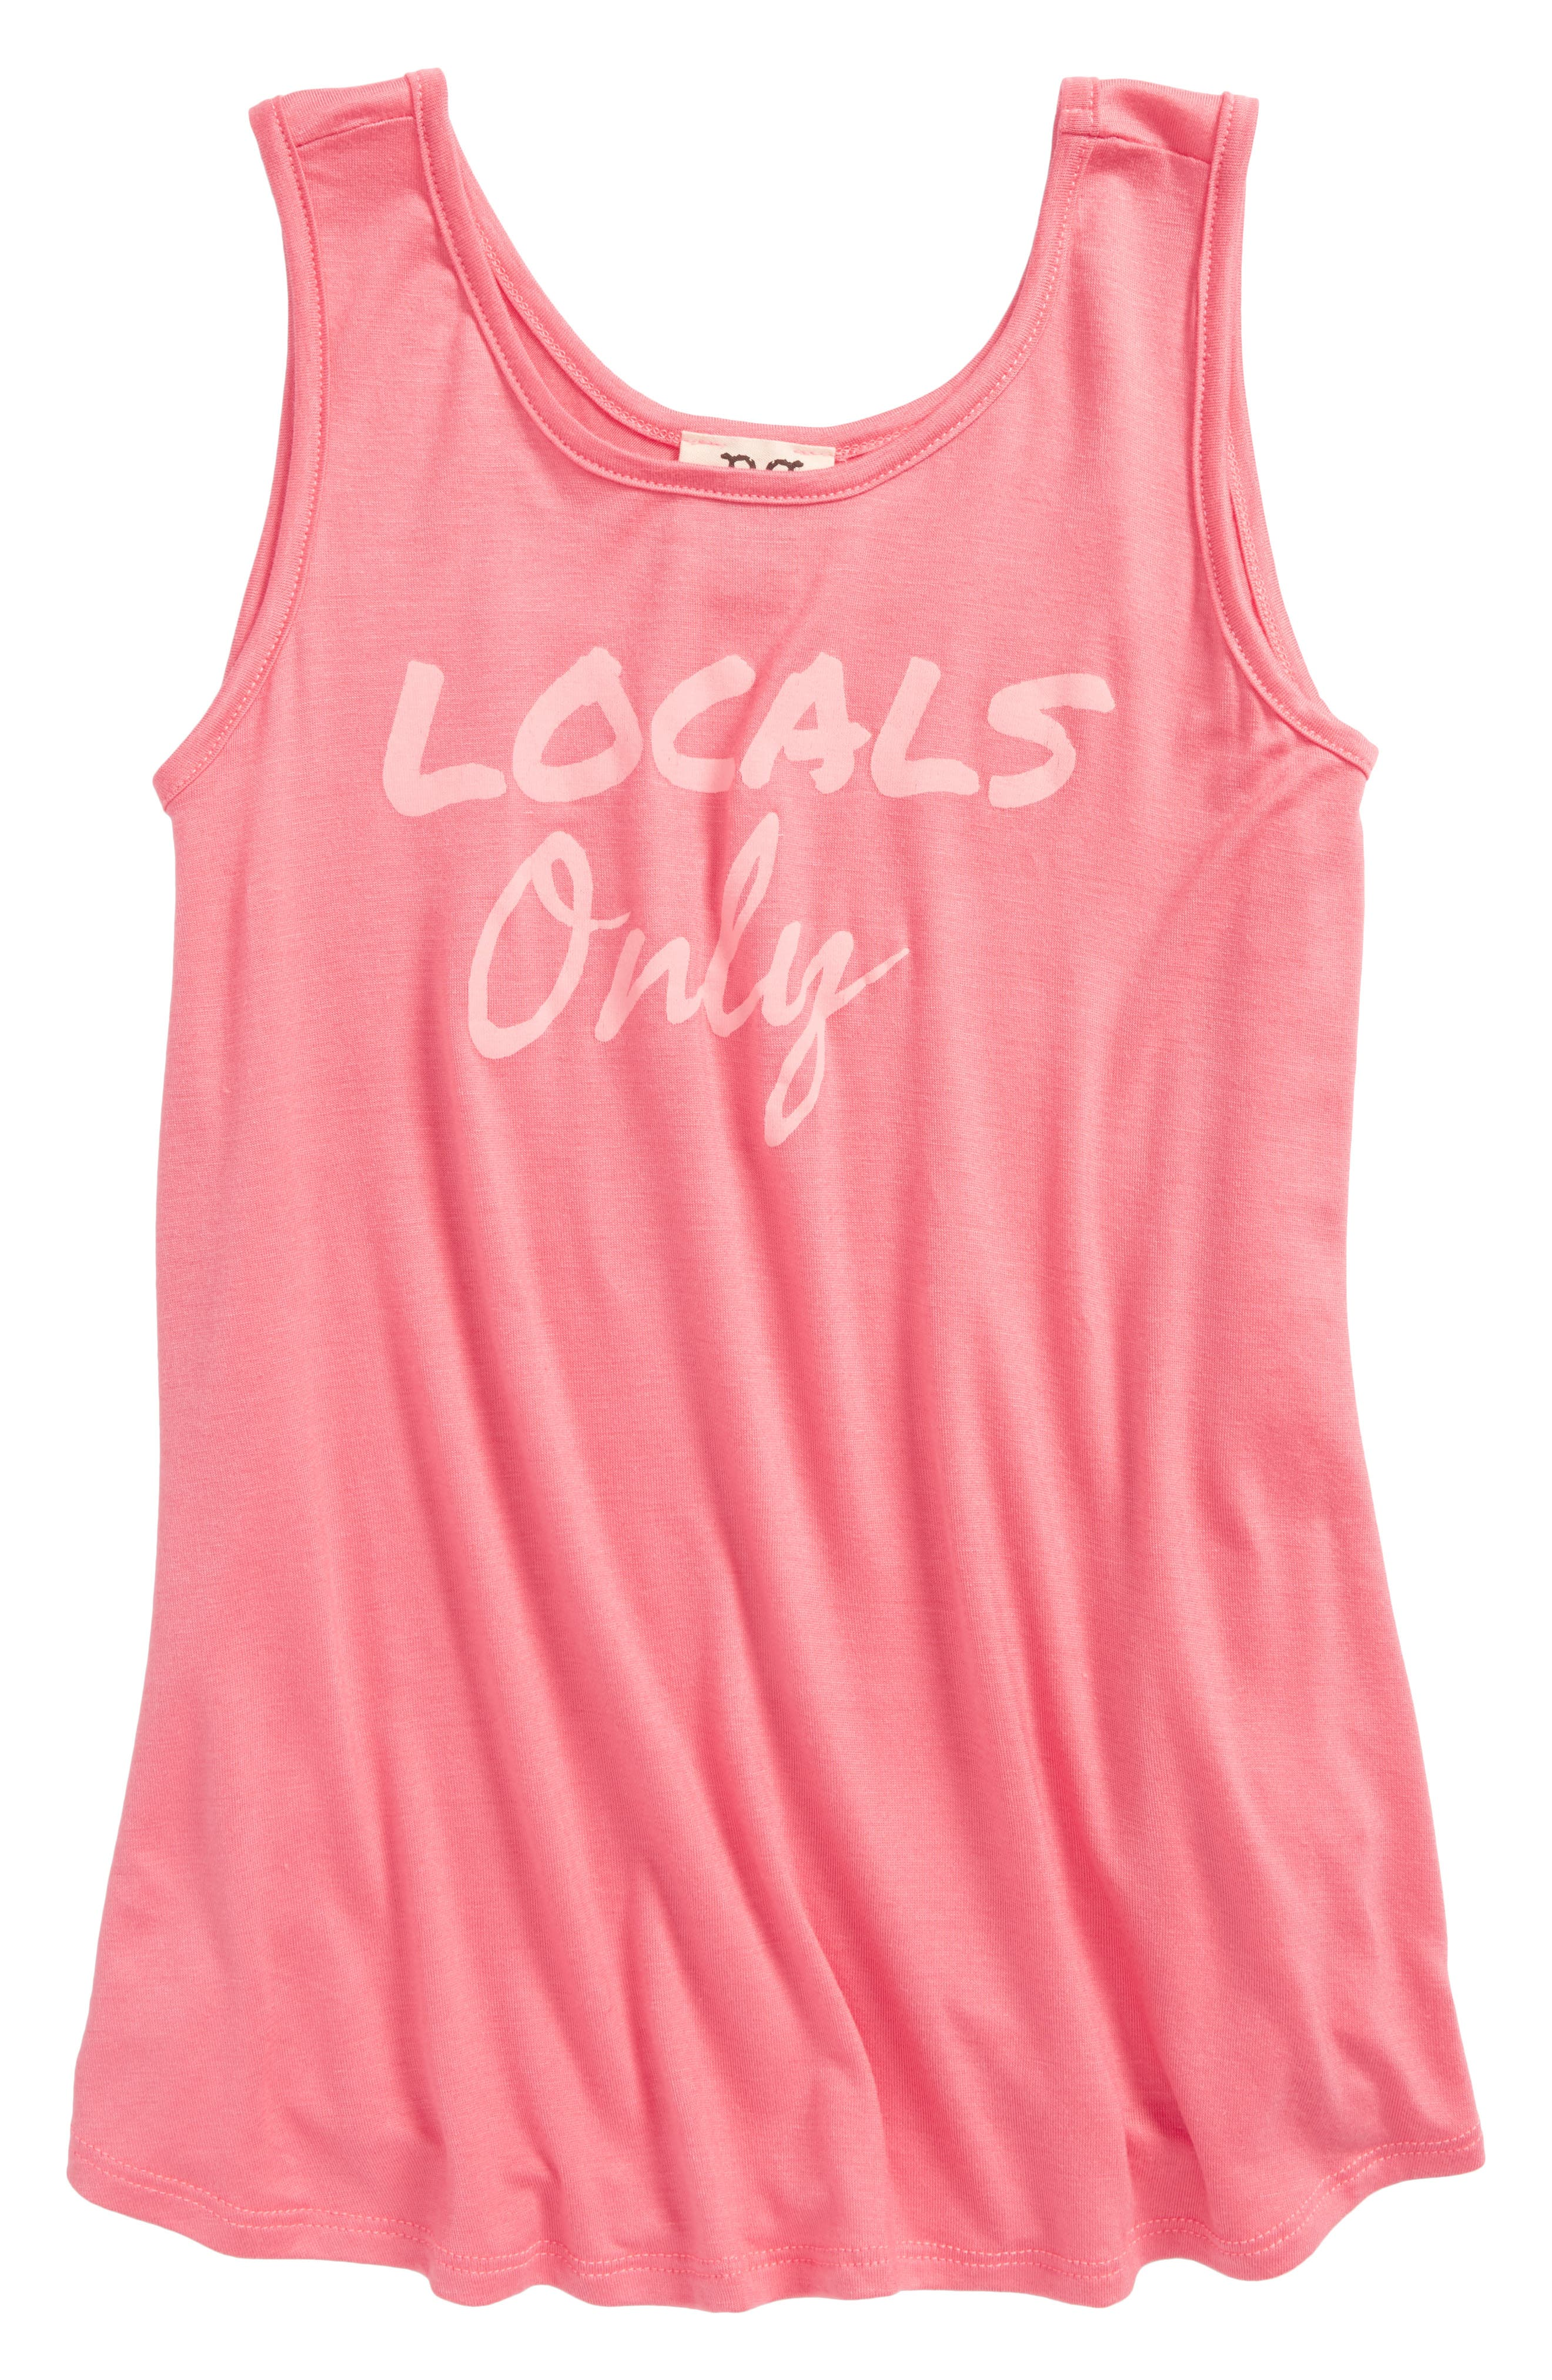 Locals Only Swing Tank,                             Main thumbnail 1, color,